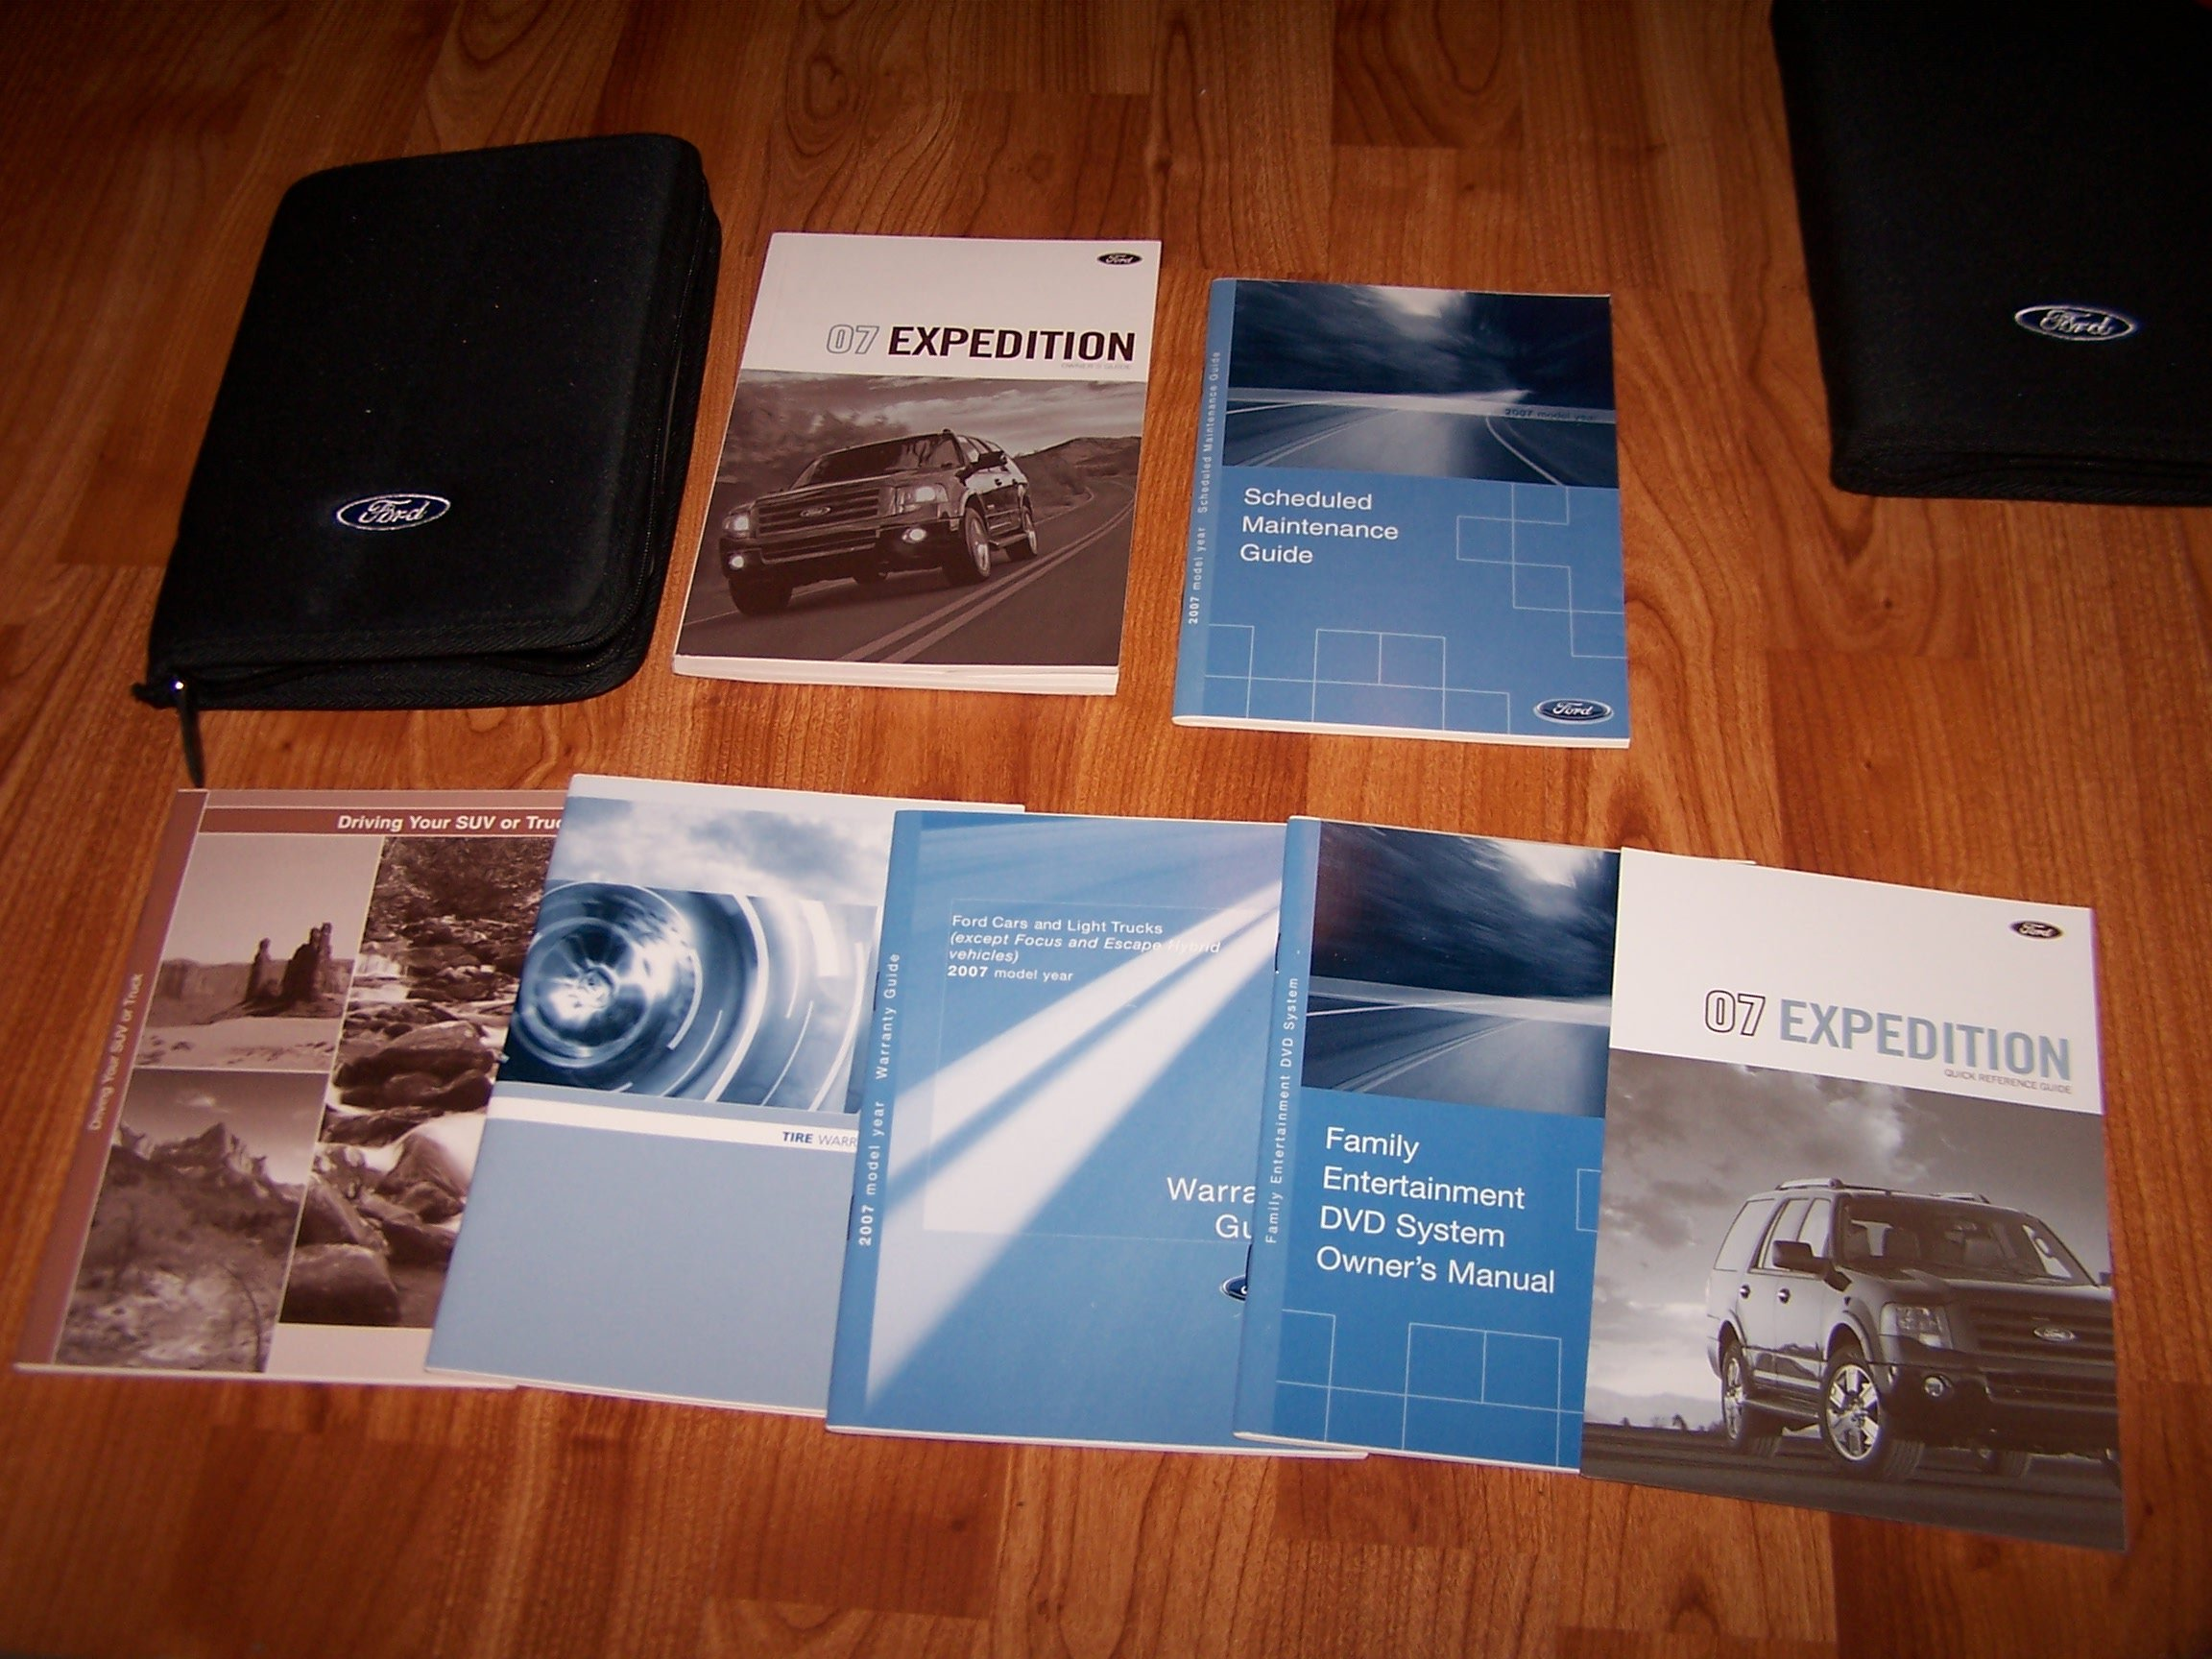 2007 ford expedition owners manual ford motor company amazon com rh amazon com Ford Mustang Entertainment System Ford Mustang Entertainment System